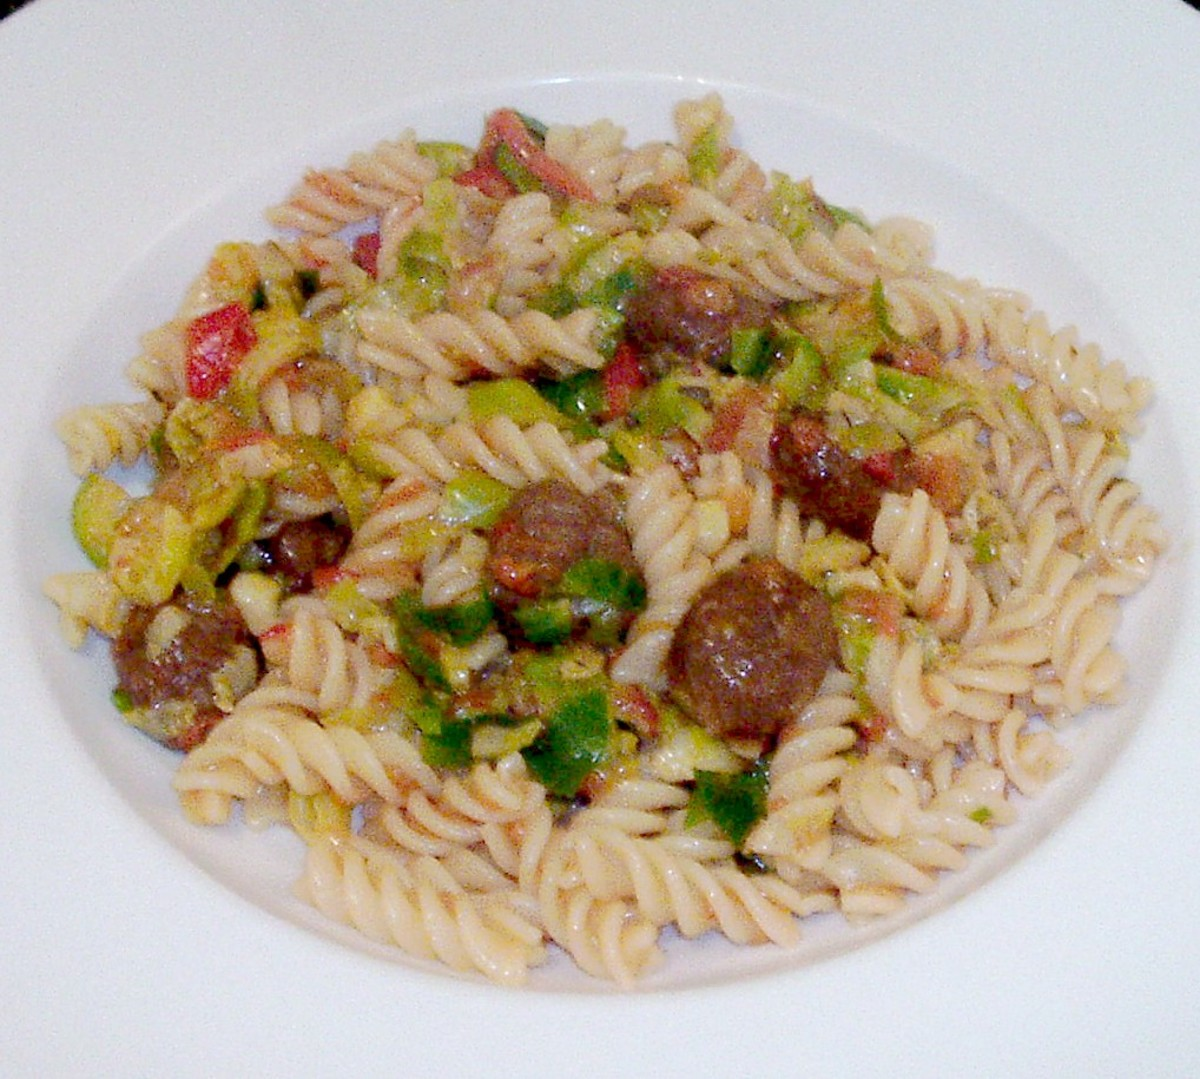 Shredded Brussels sprouts and fusilli pasta are infused with wagyu beef meatballs in tomato salsa sauce